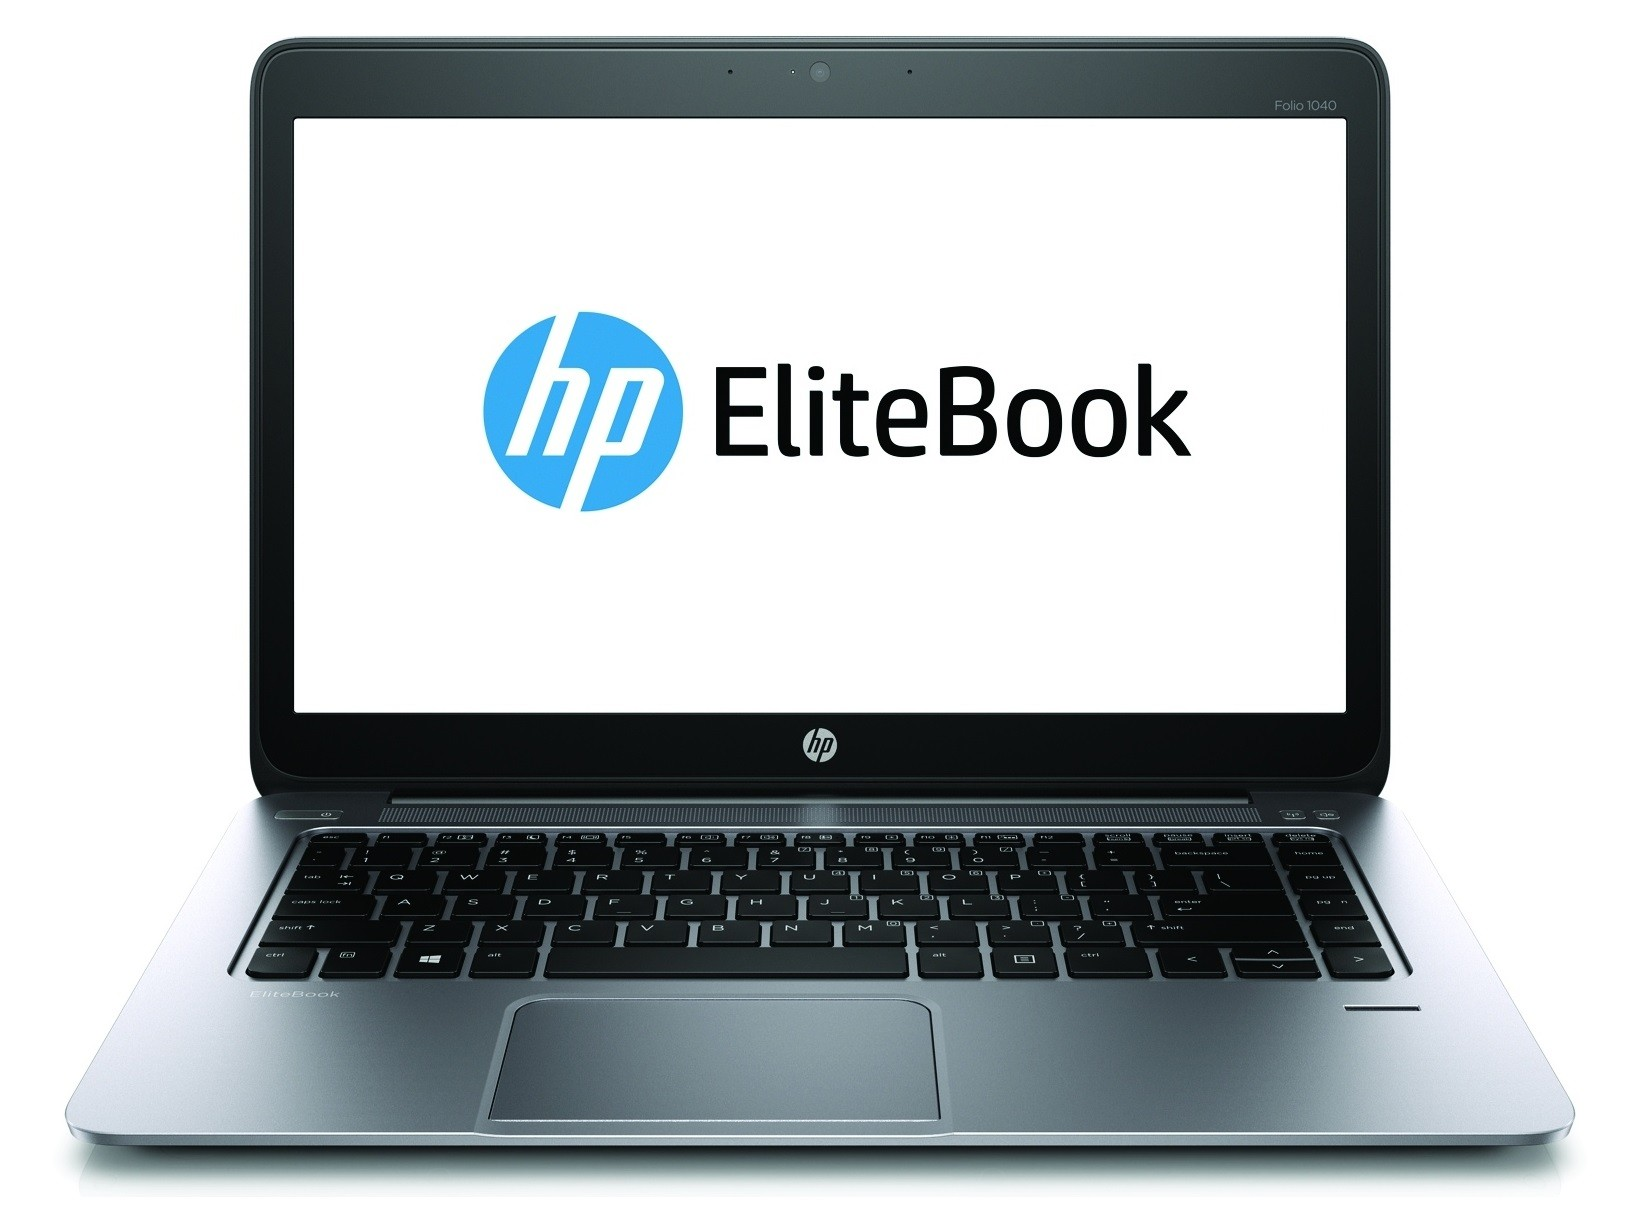 Ноутбук HP EliteBook 1040 G3 1EN10EA (Intel Core i5-6200U 2.3 GHz/8192Mb/256Gb/Intel HD Graphics/Wi-Fi/Bluetooth/Cam/14/1920x1080/Windows 7 64-bit)